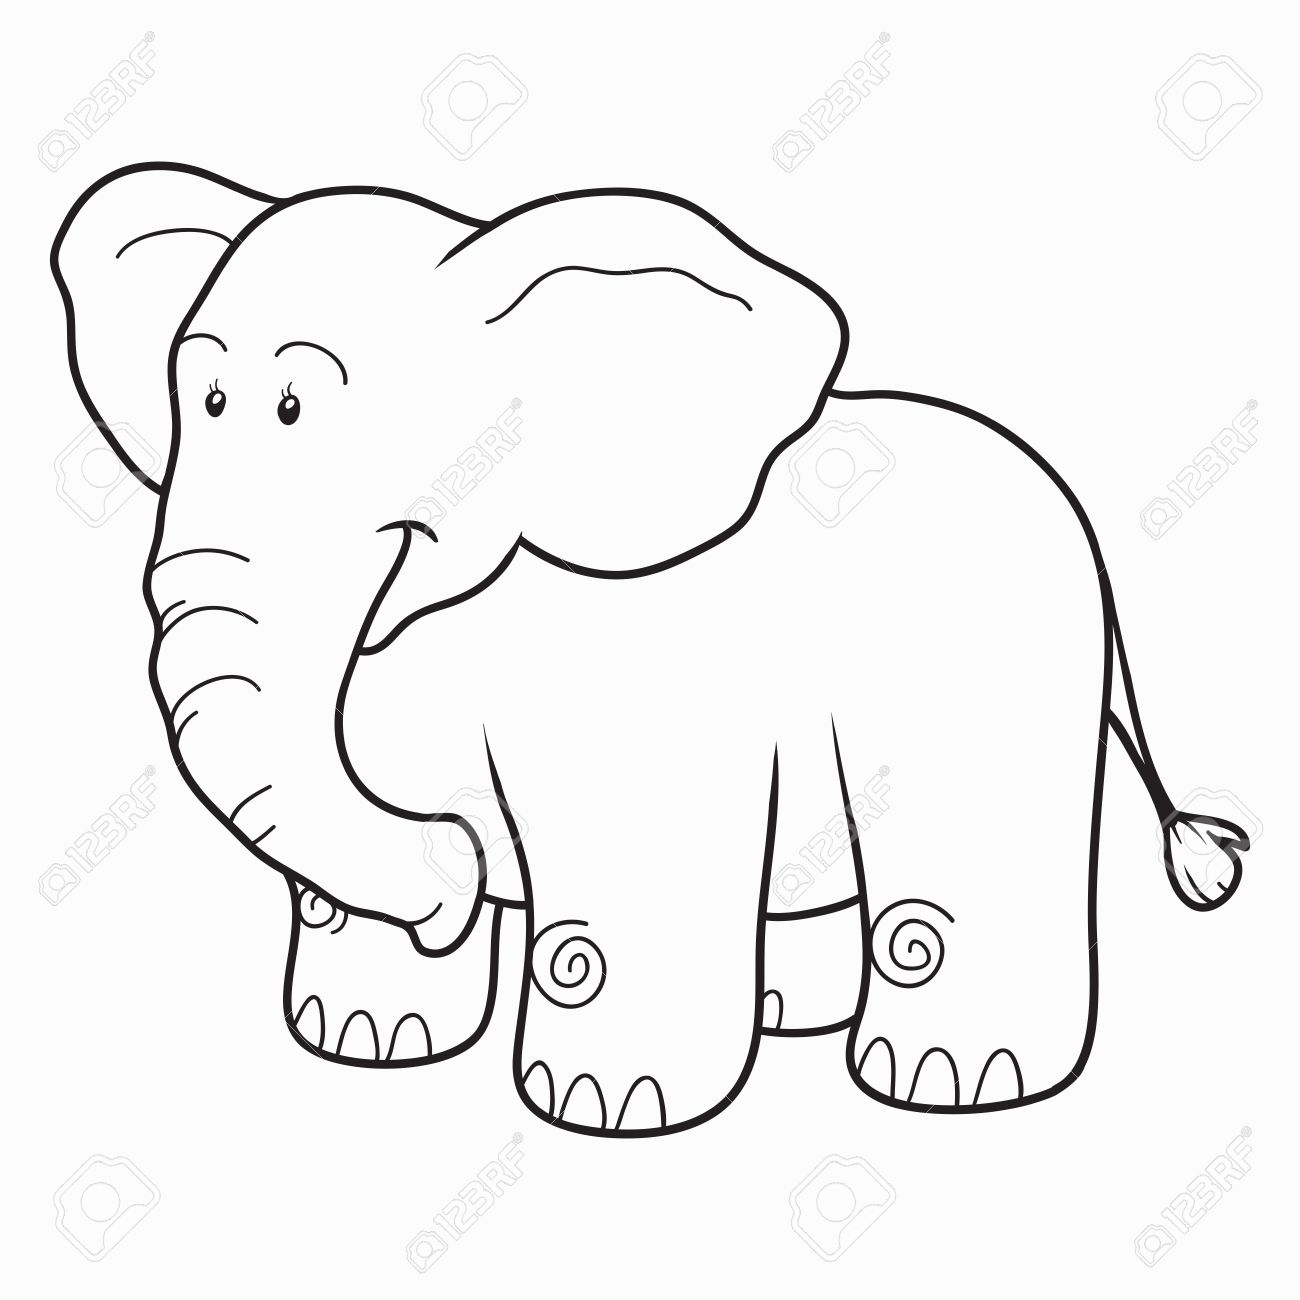 106 Colouring Book Elephant Free Images